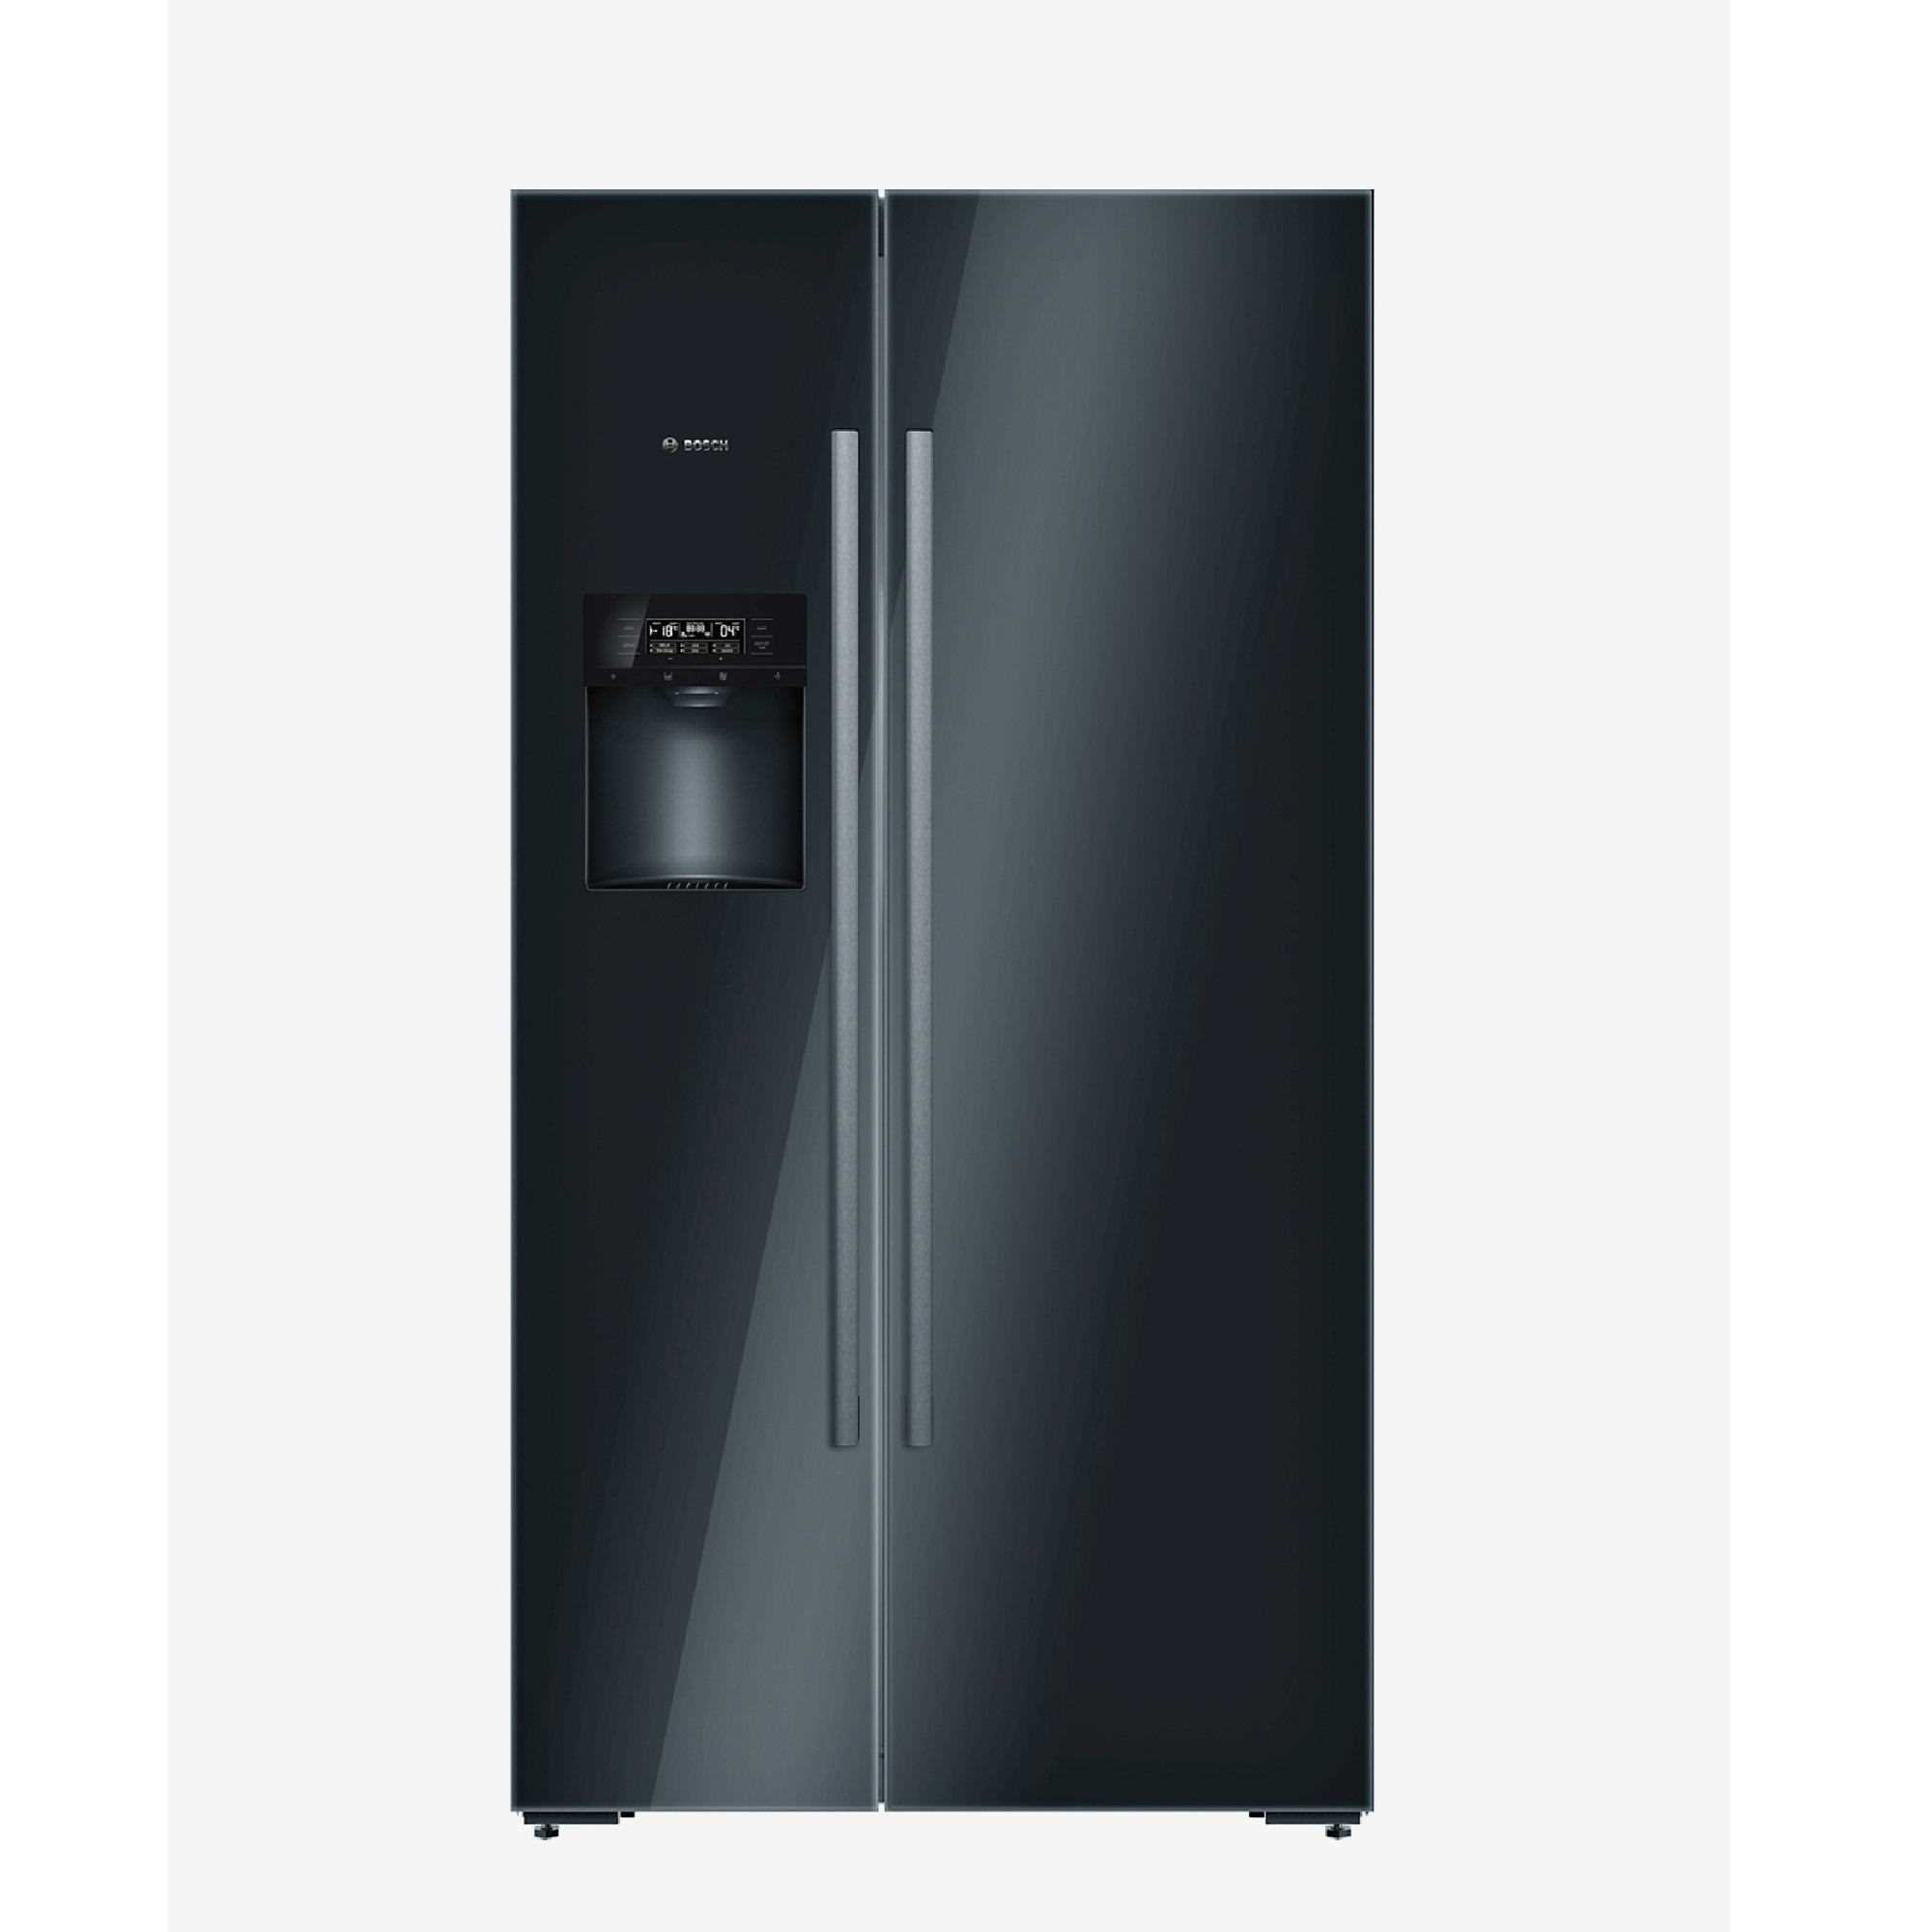 Bosch Kad92sb30 Side By Side 639 Litres Frost Free Refrigerator